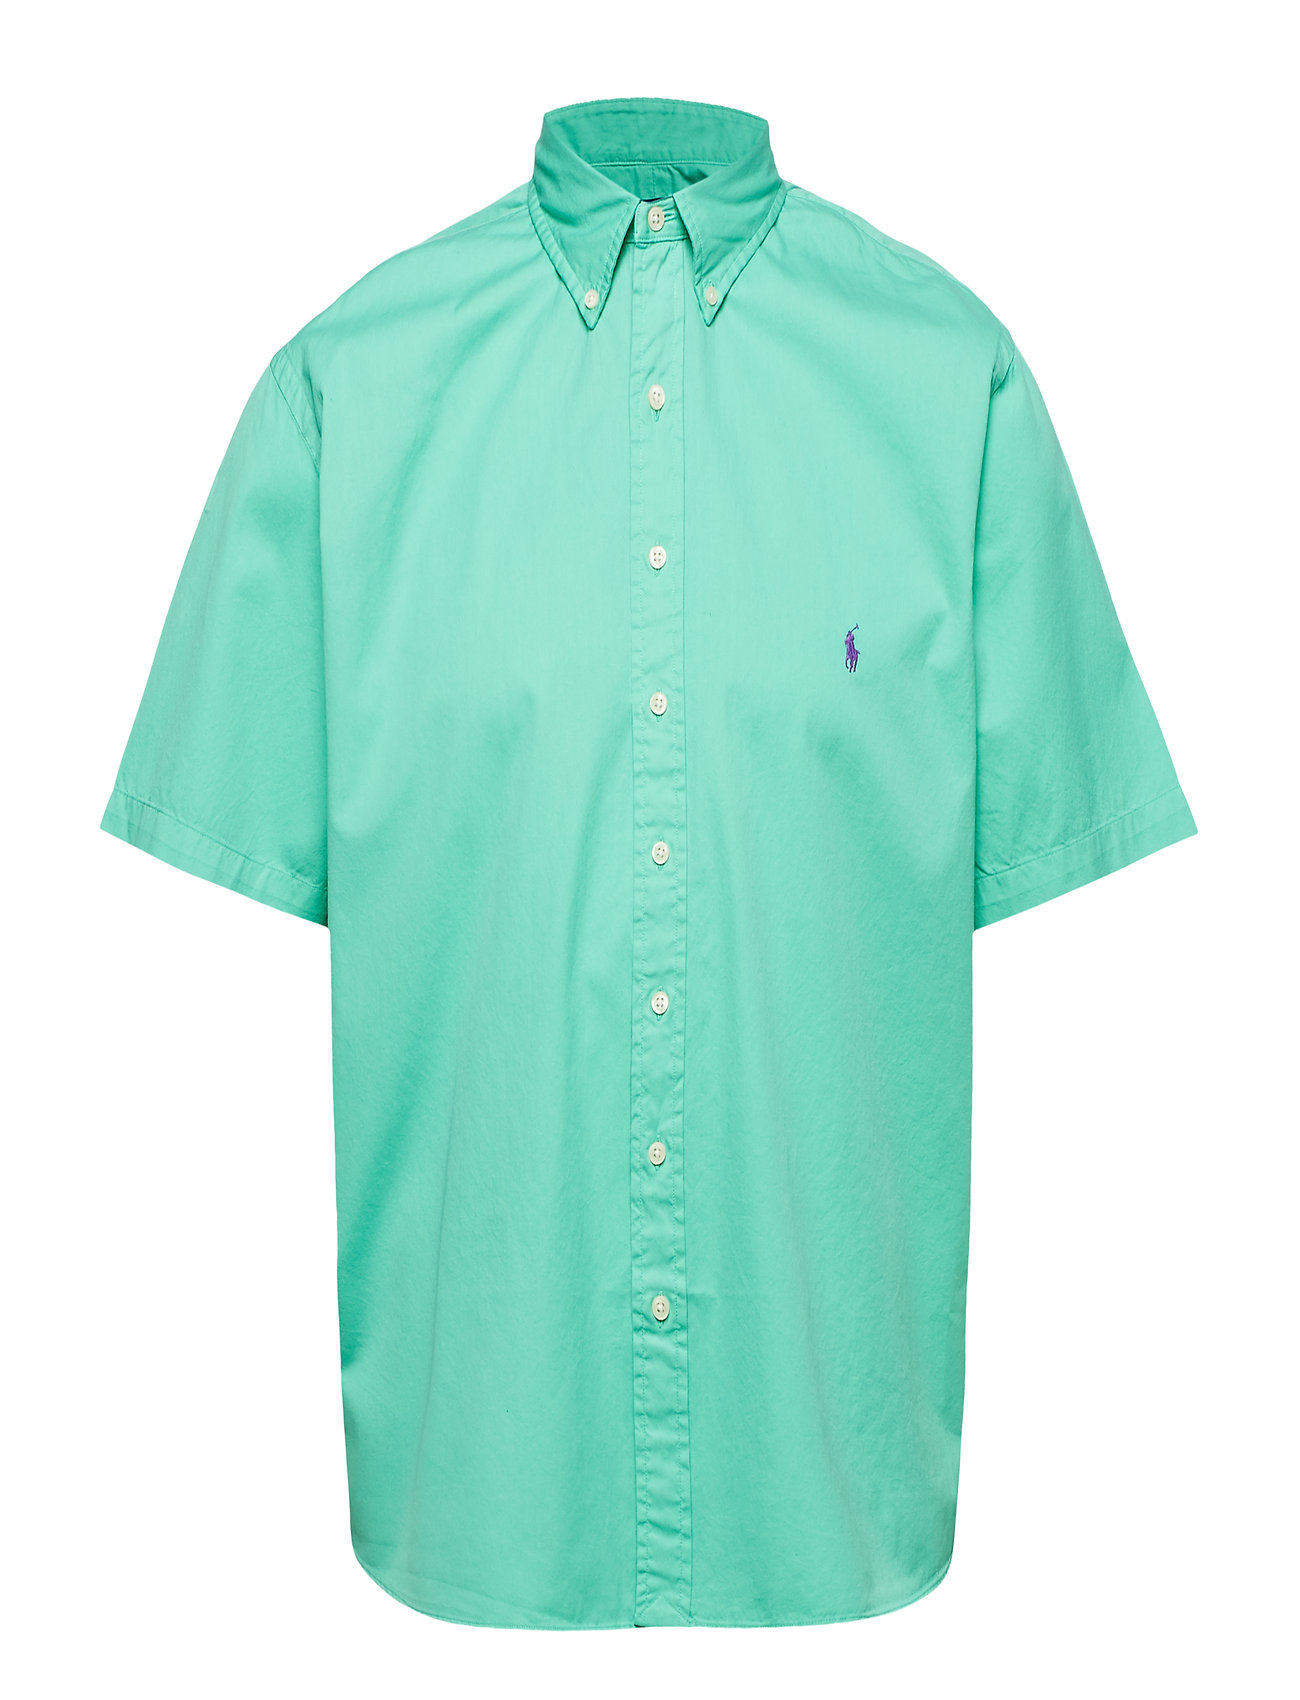 Polo Ralph Lauren Big & Tall Classic Fit Twill Shirt - SUNSET GREEN